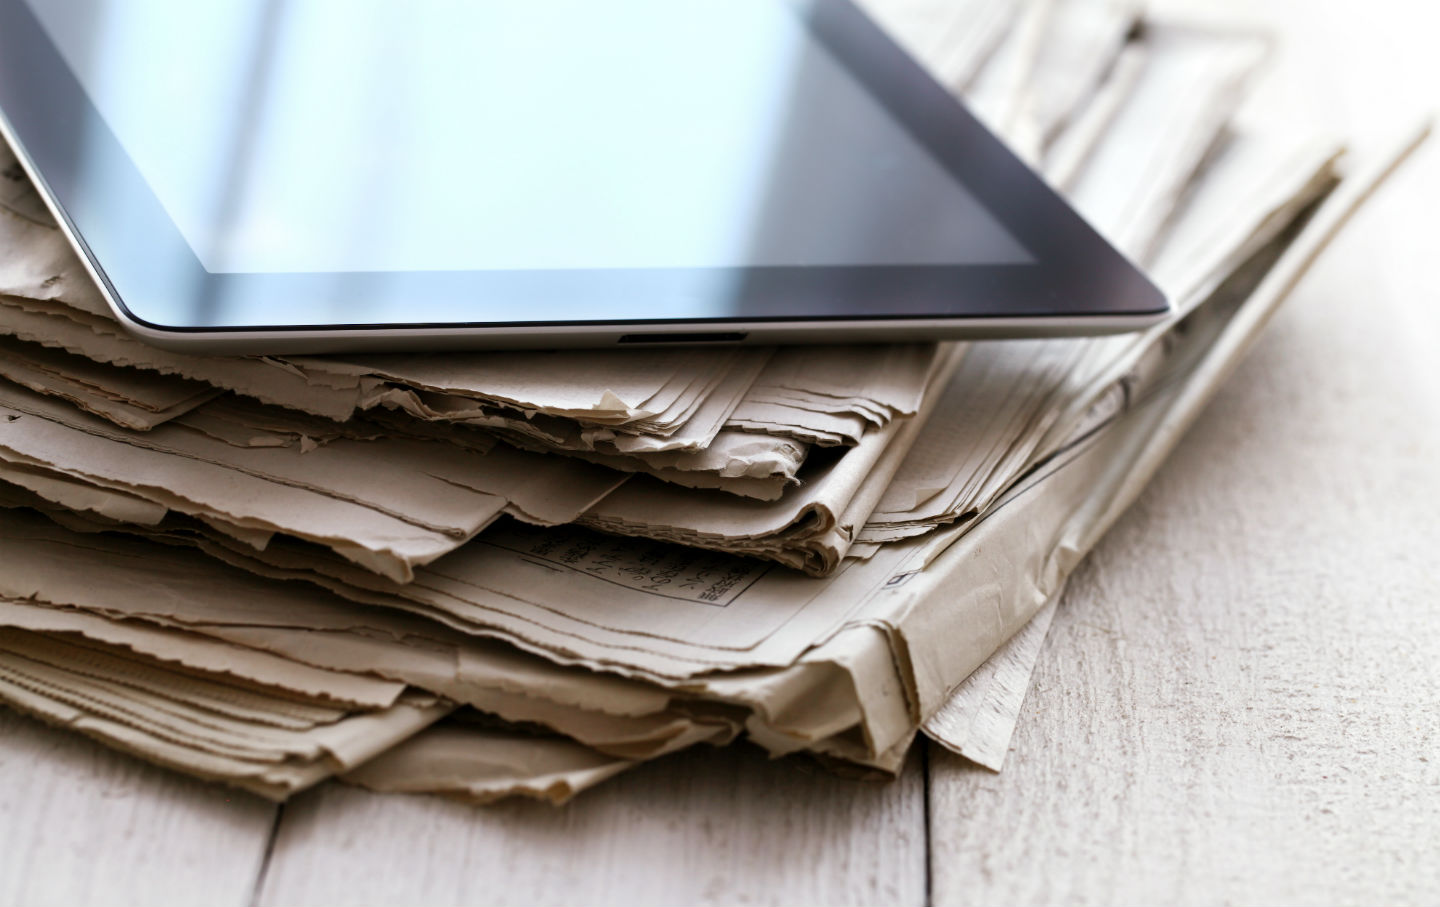 Newspapers-and-tablet